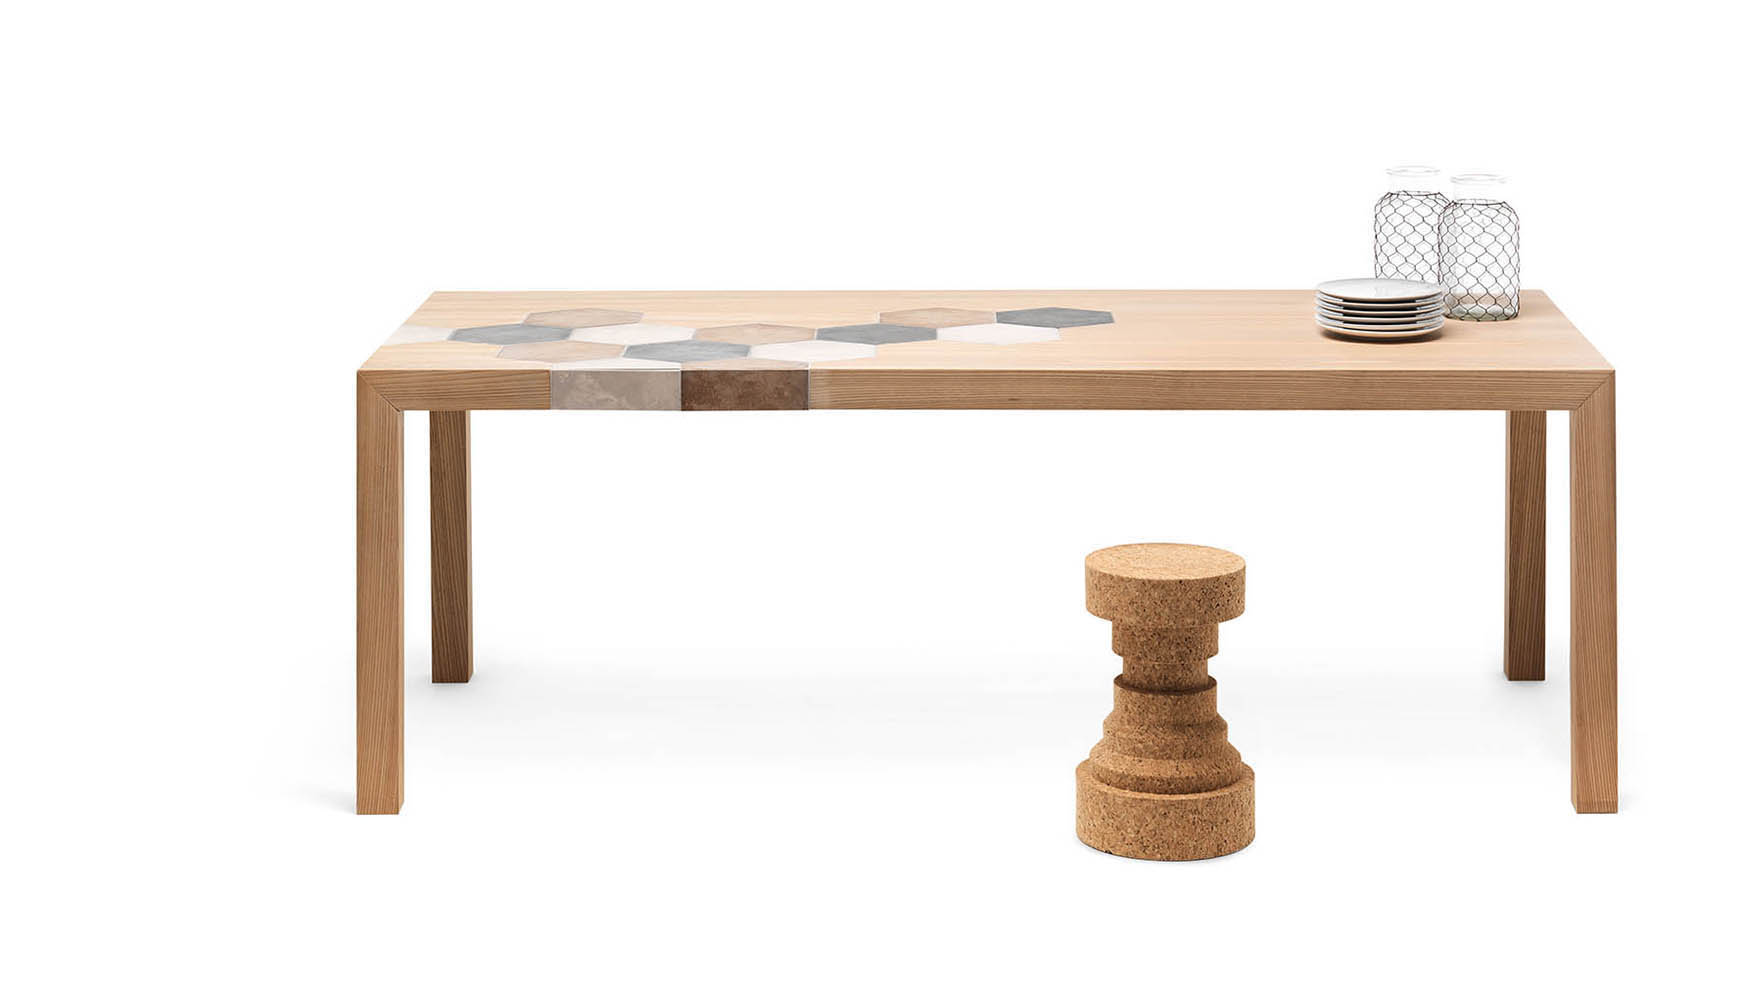 mogg_table_cementino_7.jpg